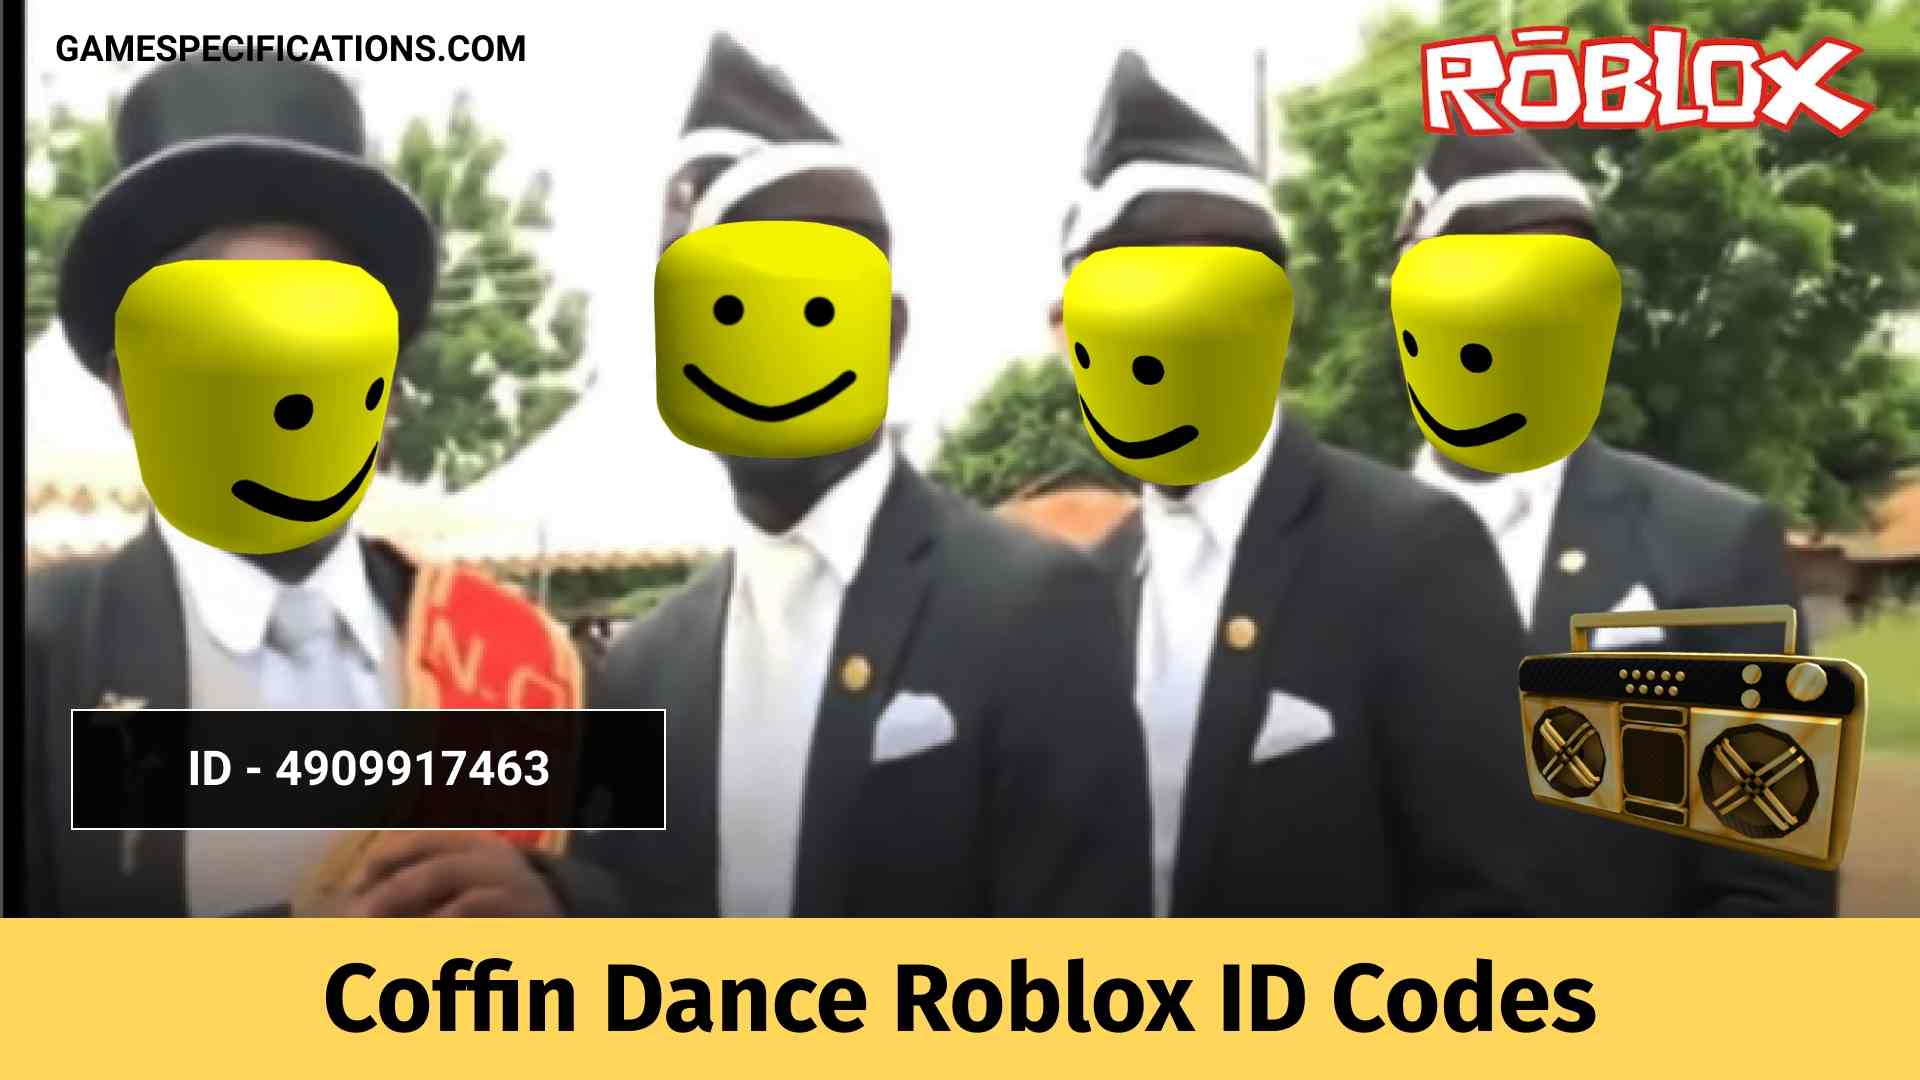 100 Coffin Dance Roblox Id Codes 2021 Game Specifications